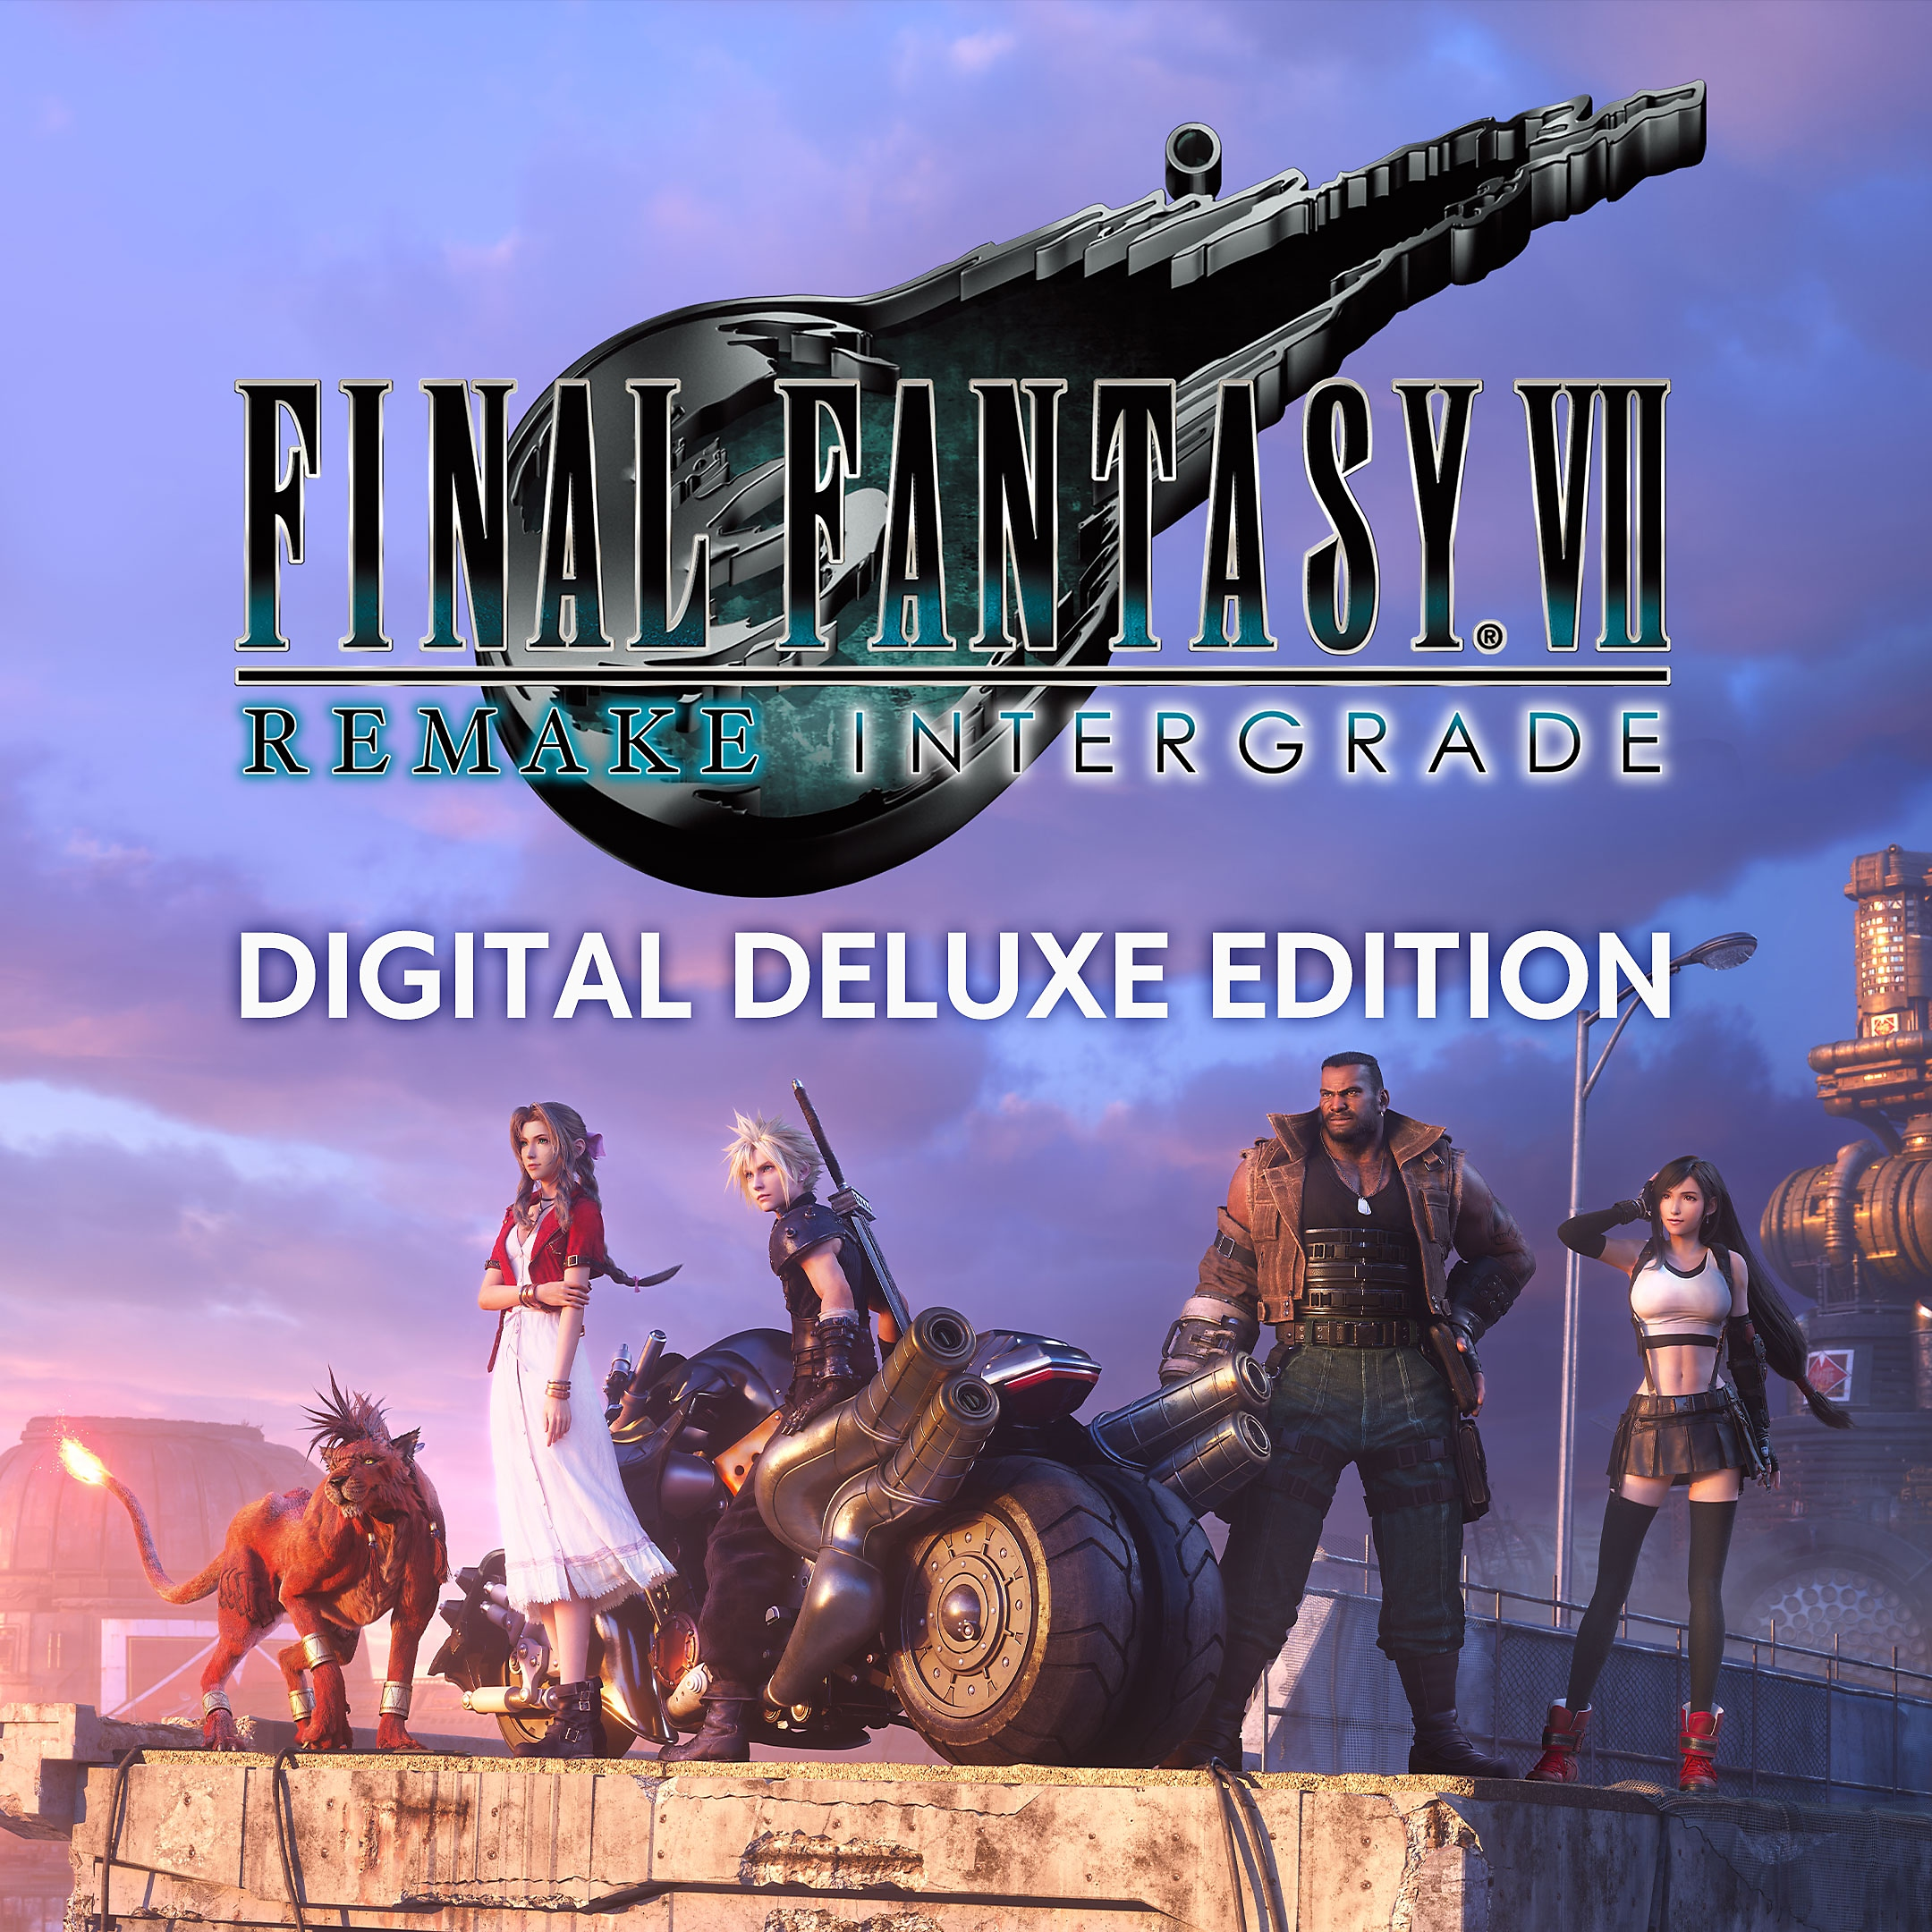 FINAL FANTASY VII REMAKE INTERGRADE - Arte de tienda de Digital Deluxe Edition